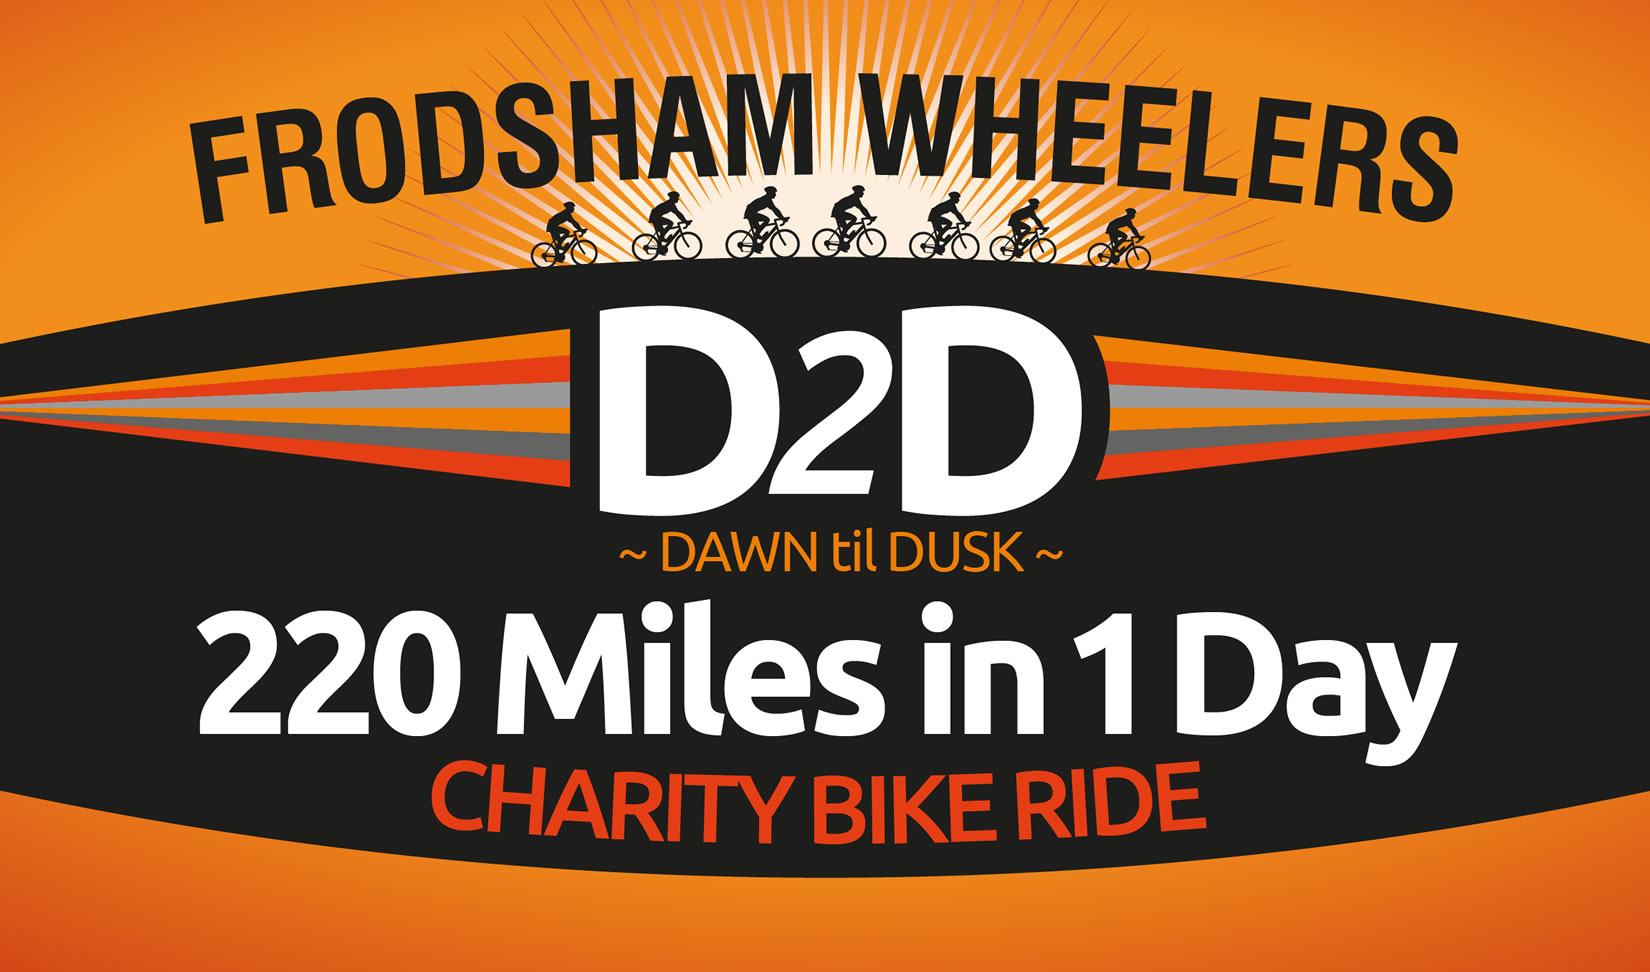 d2d charity bike ride banner